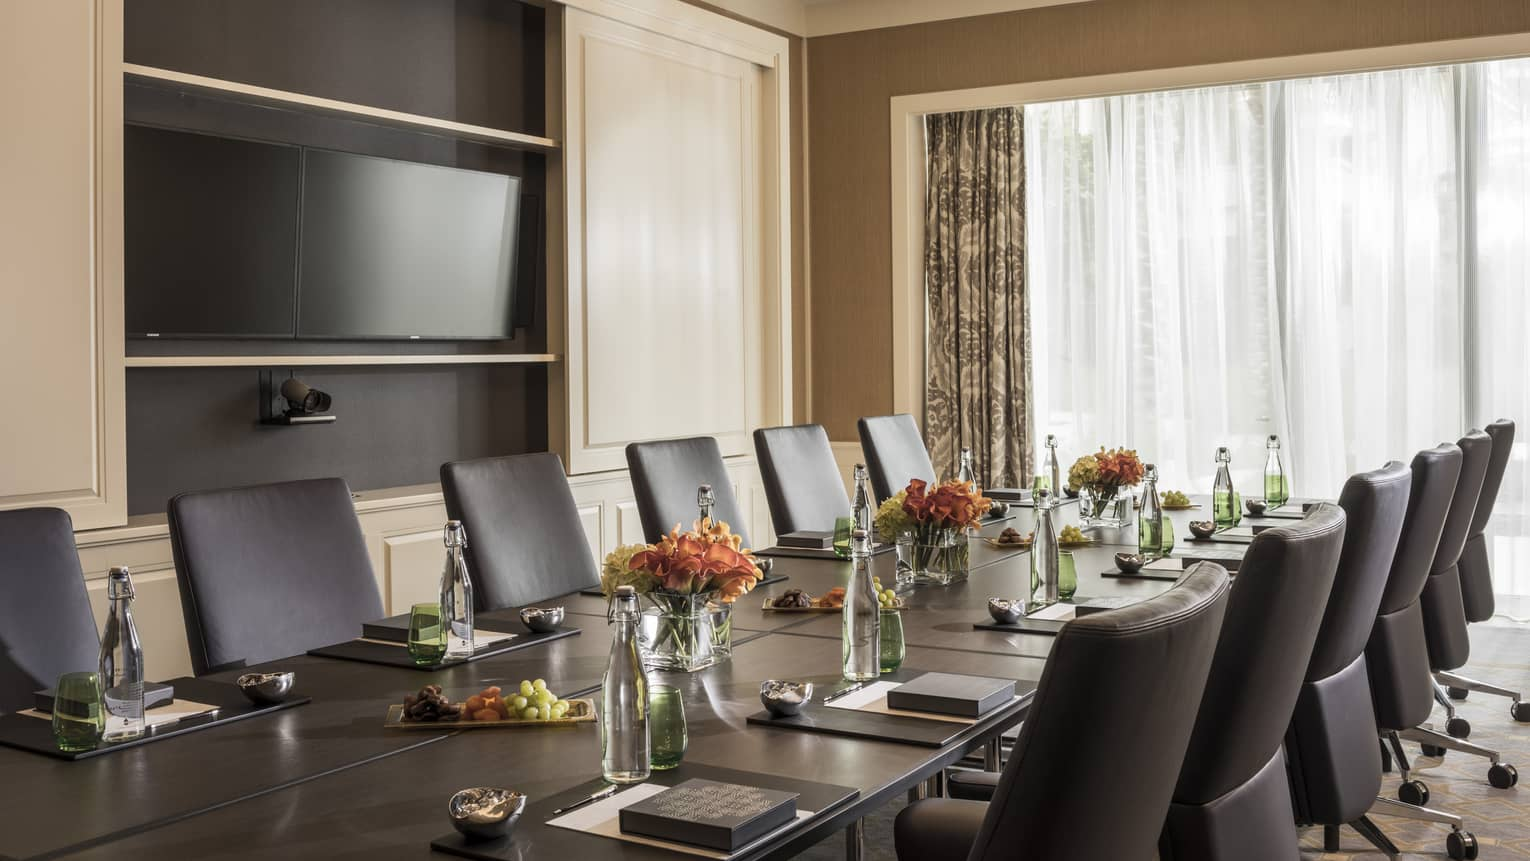 Long boardroom table set with glass bottles of water, flowers in bright meeting room